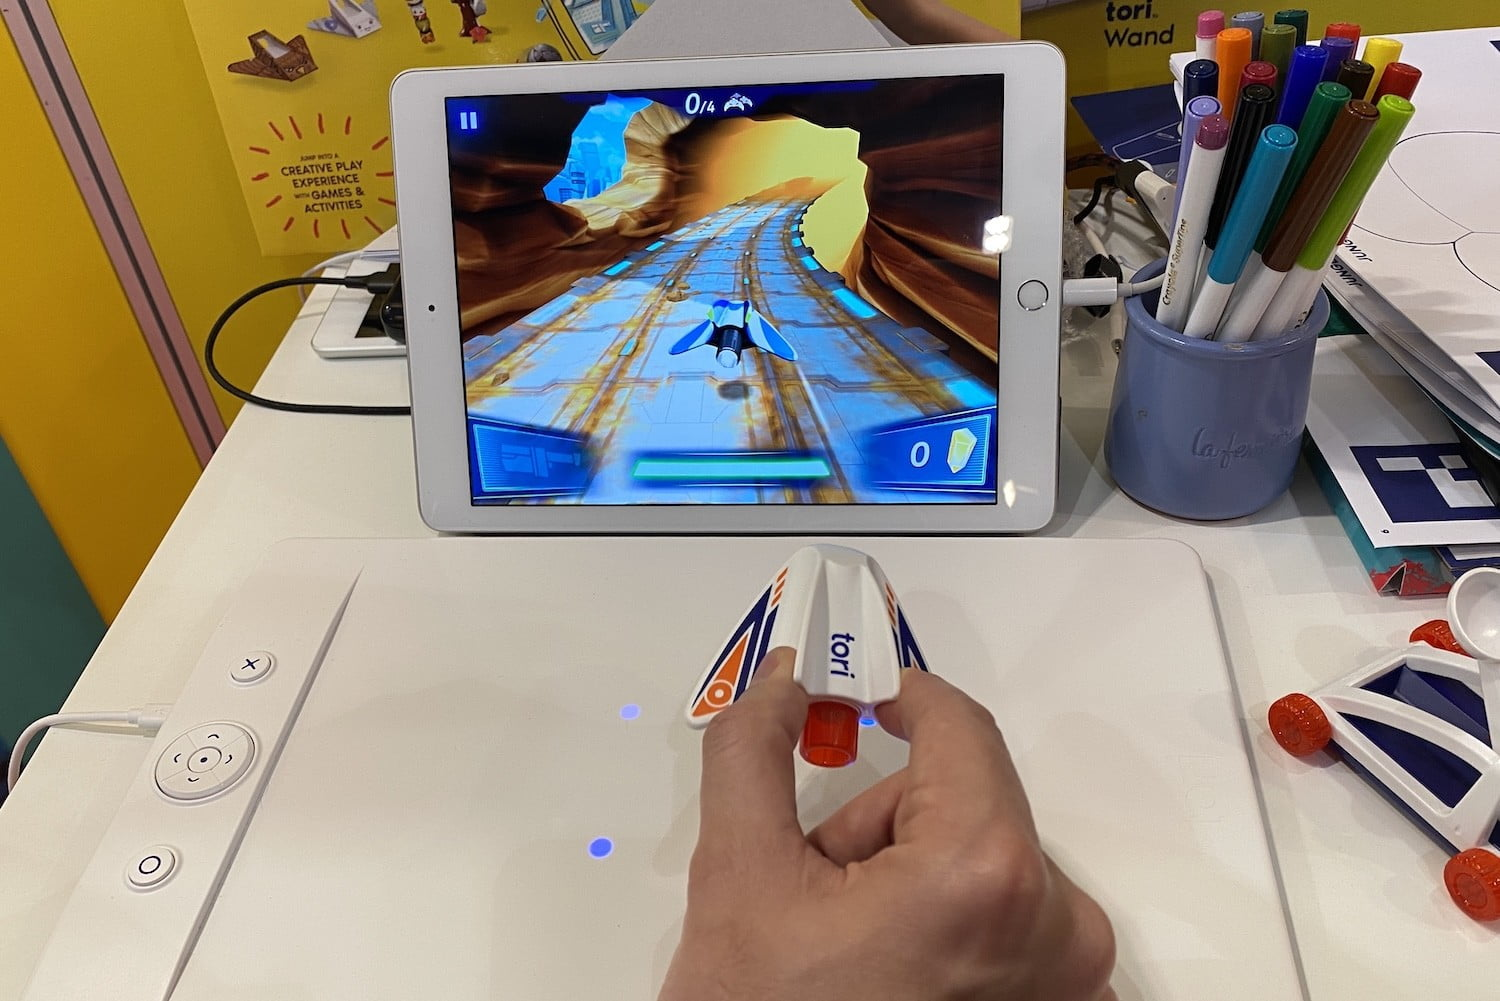 A 3D magnetic field makes it possible to control this game so precisely